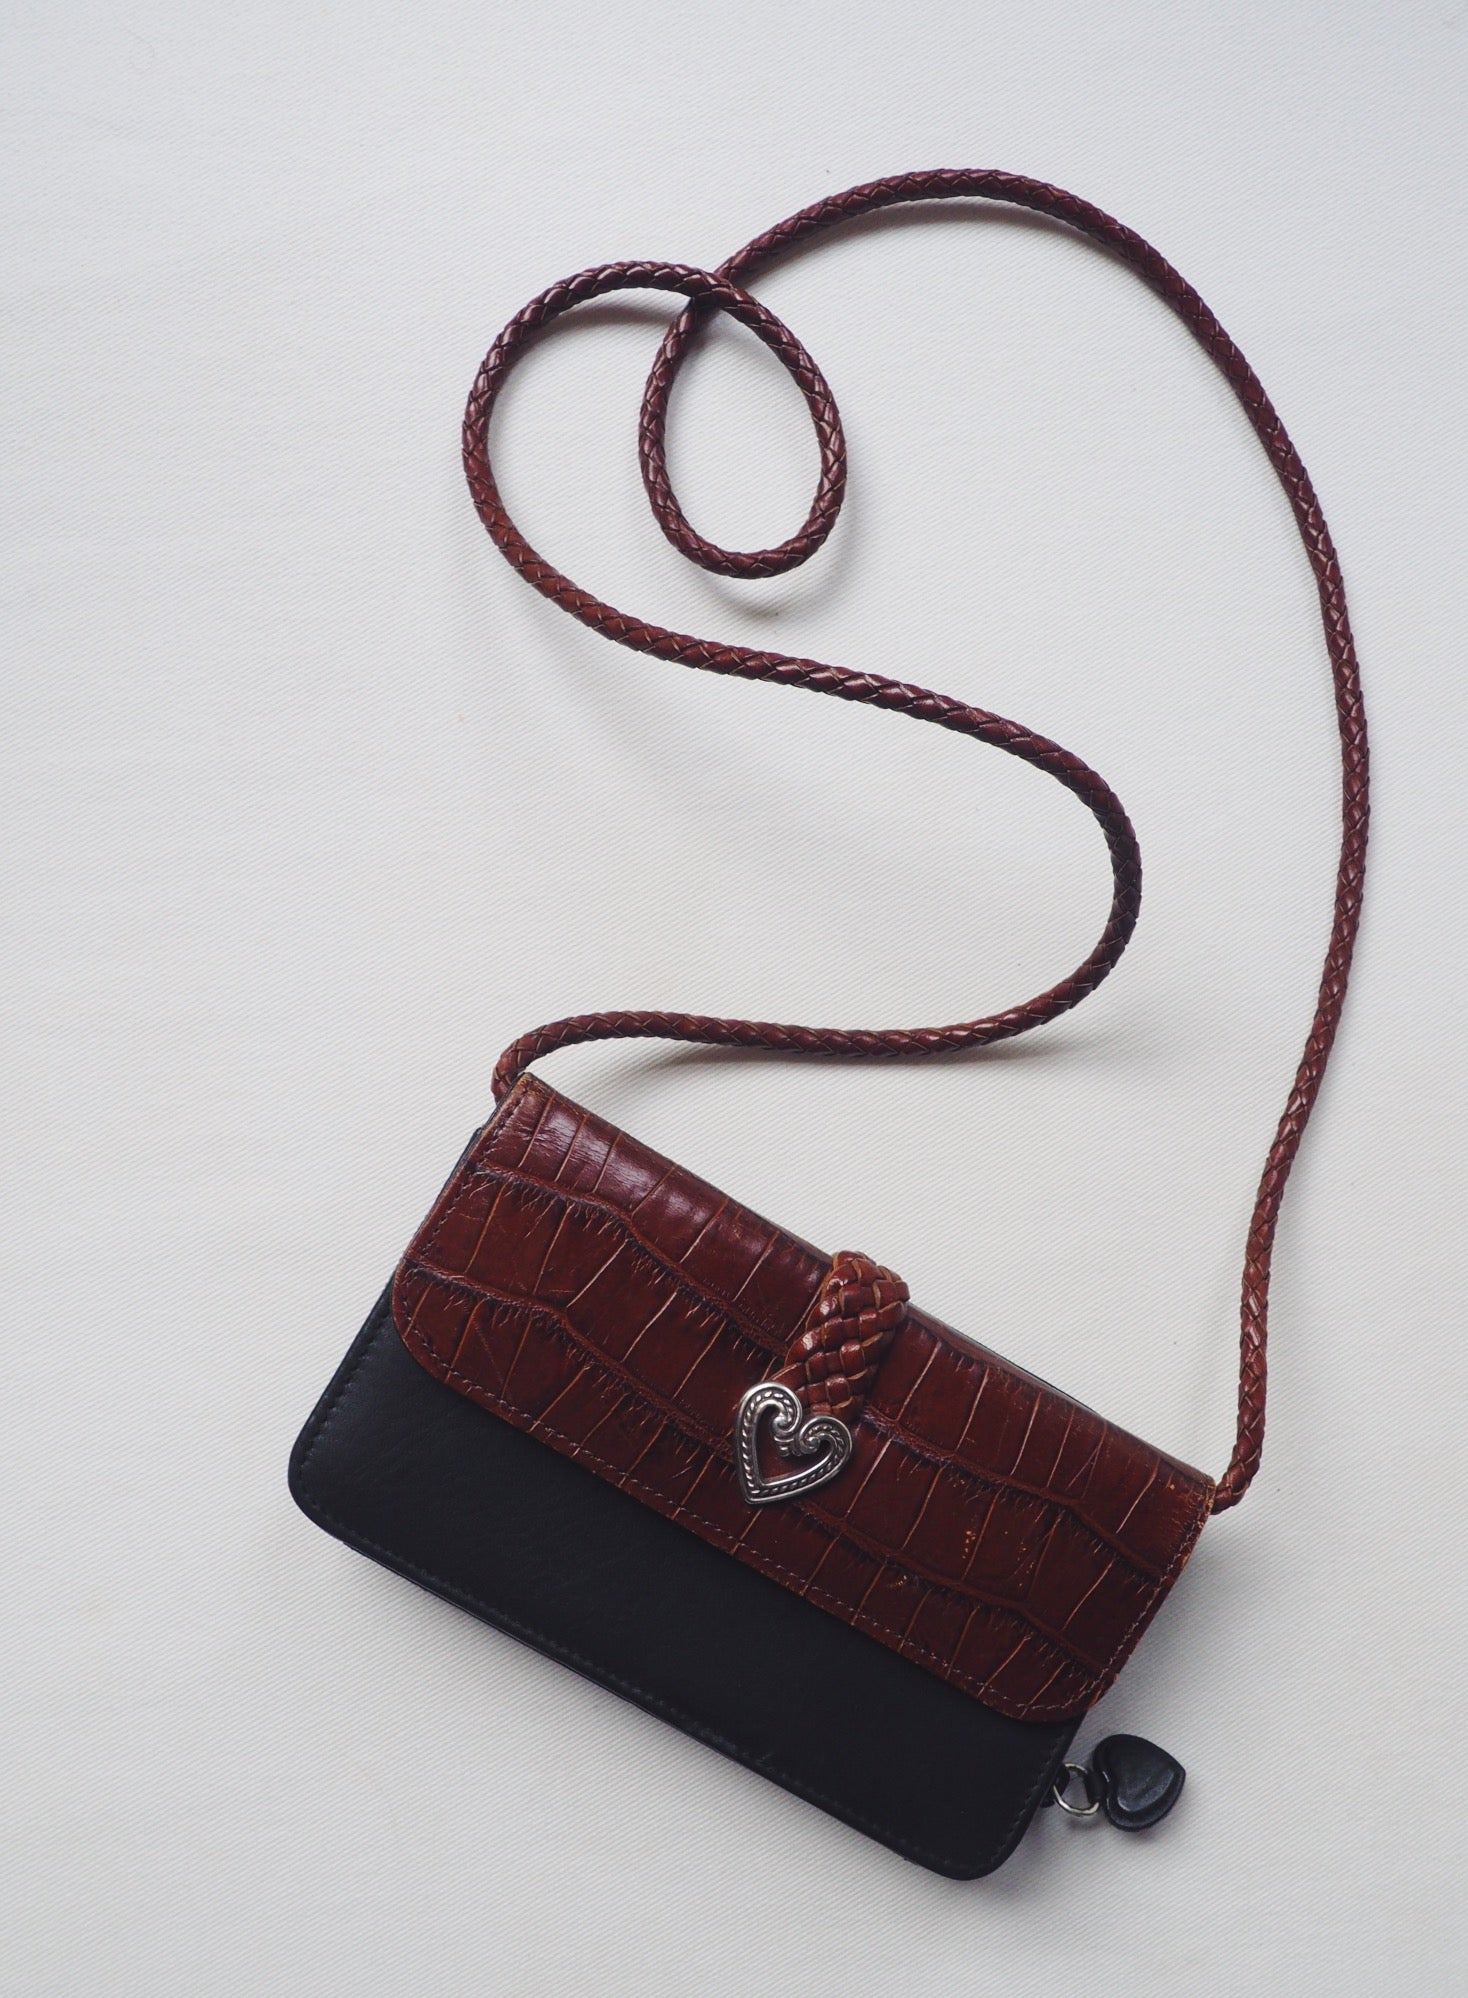 Vintage Mini Cross body Purse